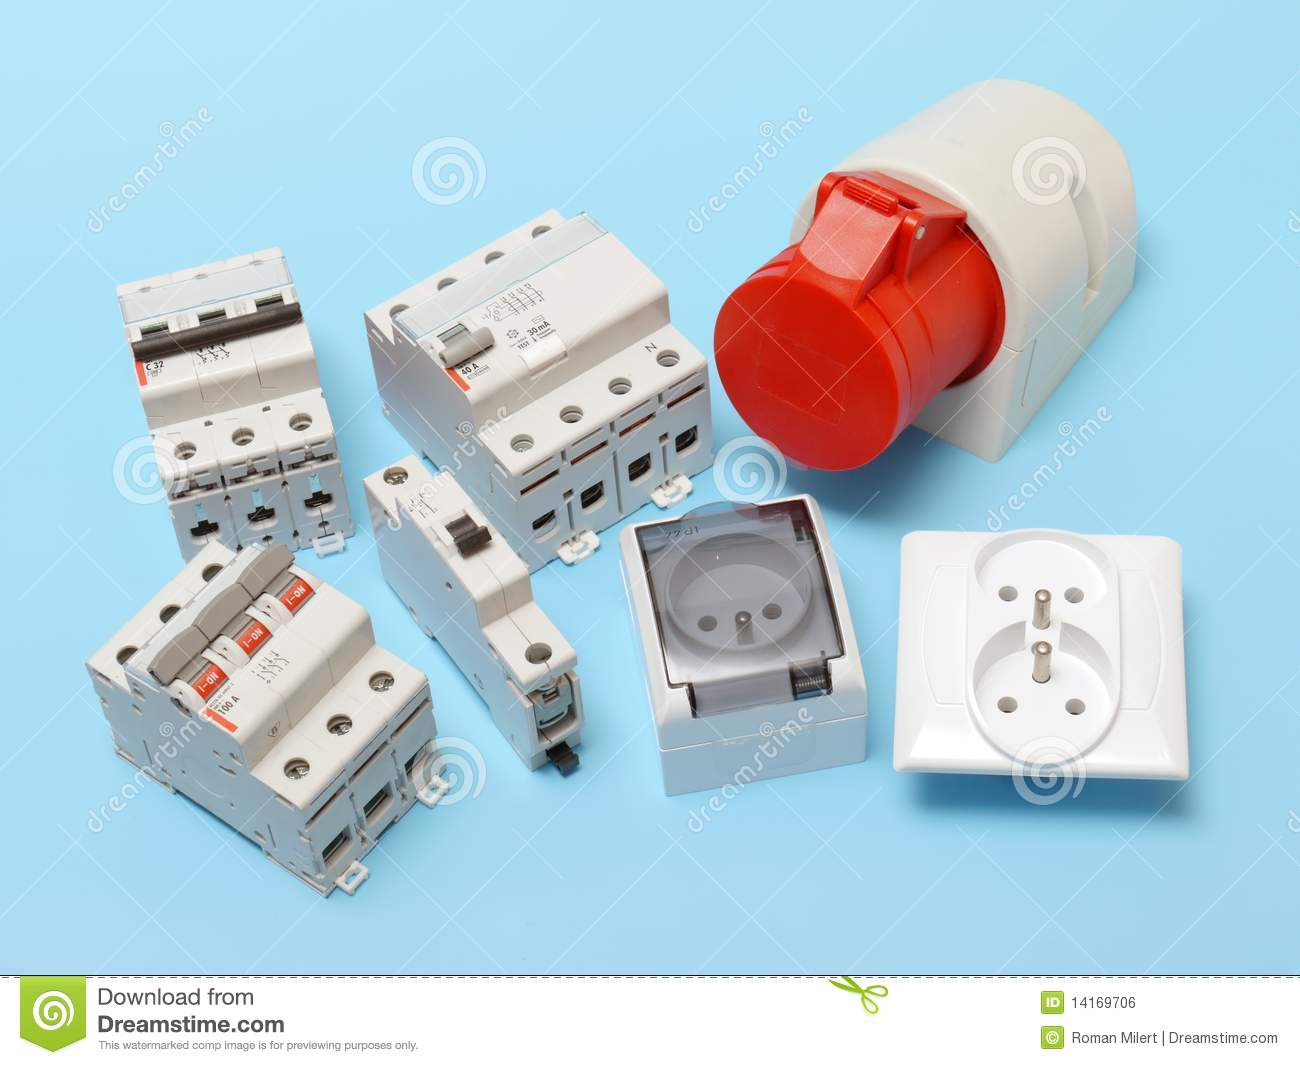 Electrical components stock photo. Image of volt, receptacle - 14169706